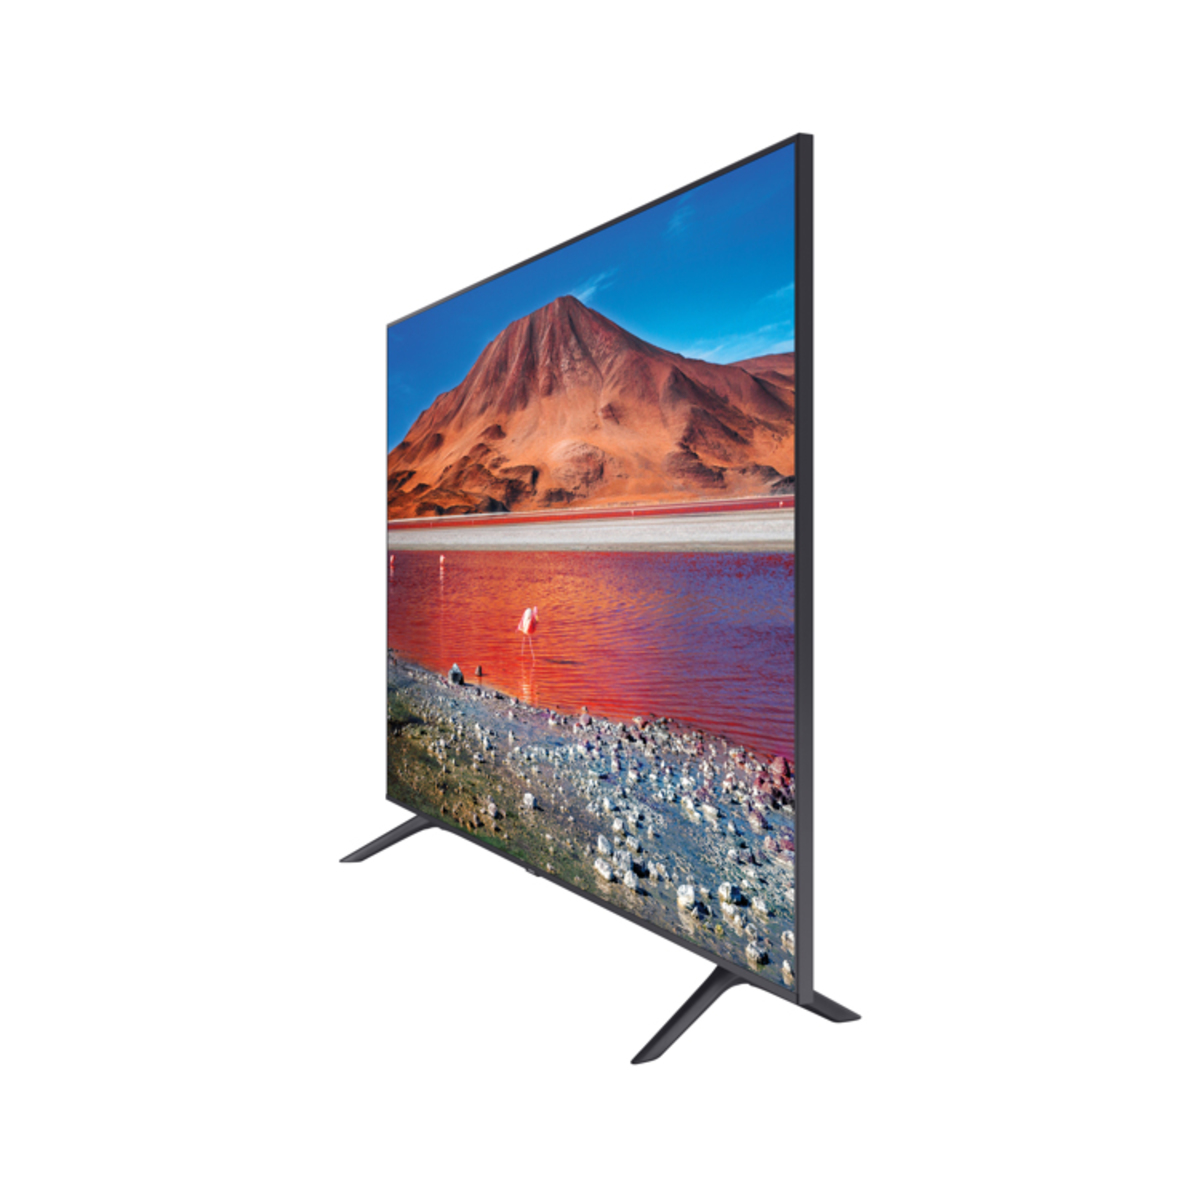 "Samsung UE65NU7400 65"" Ultra HD certified HDR Smart 4K TV"